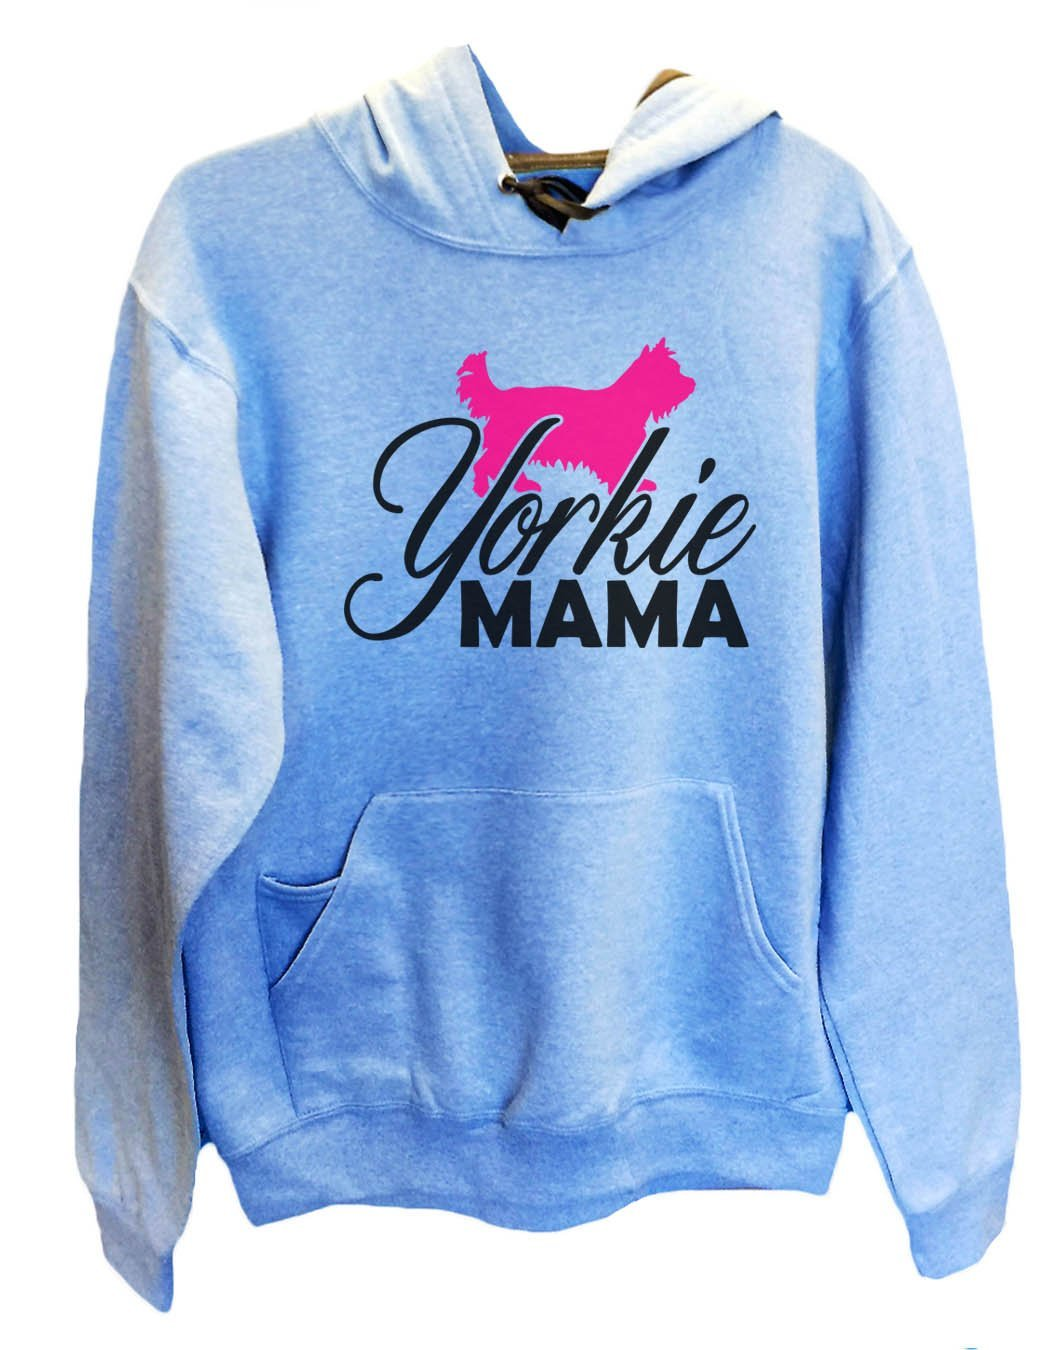 UNISEX HOODIE - Yorkie Mama - FUNNY MENS AND WOMENS HOODED SWEATSHIRTS - 2181 Funny Shirt